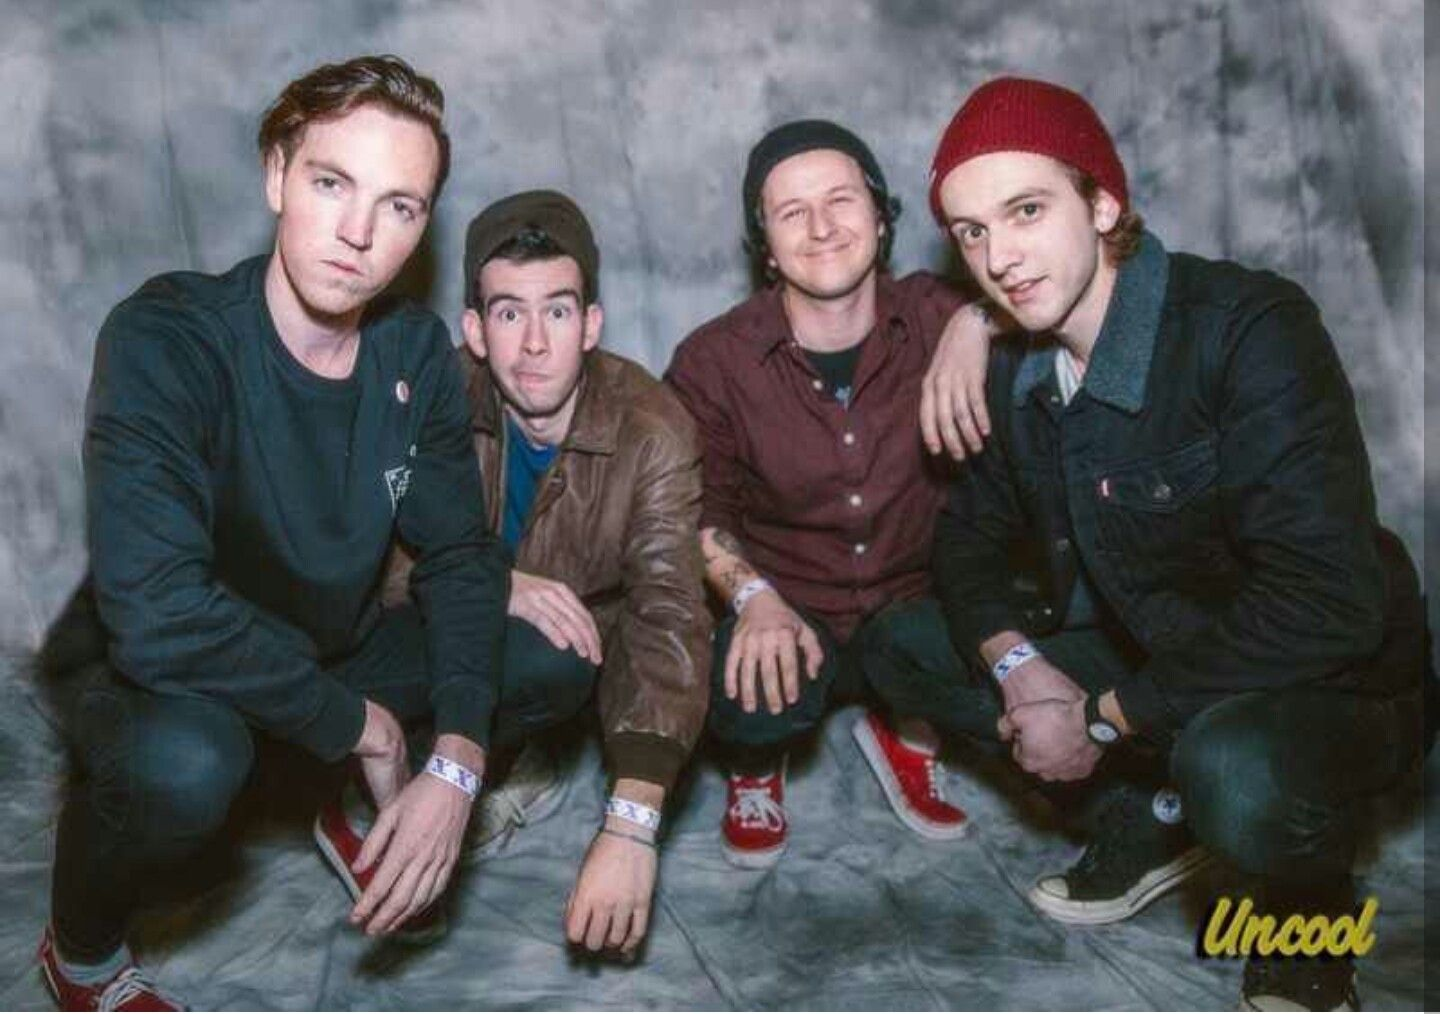 The Frights Band Image